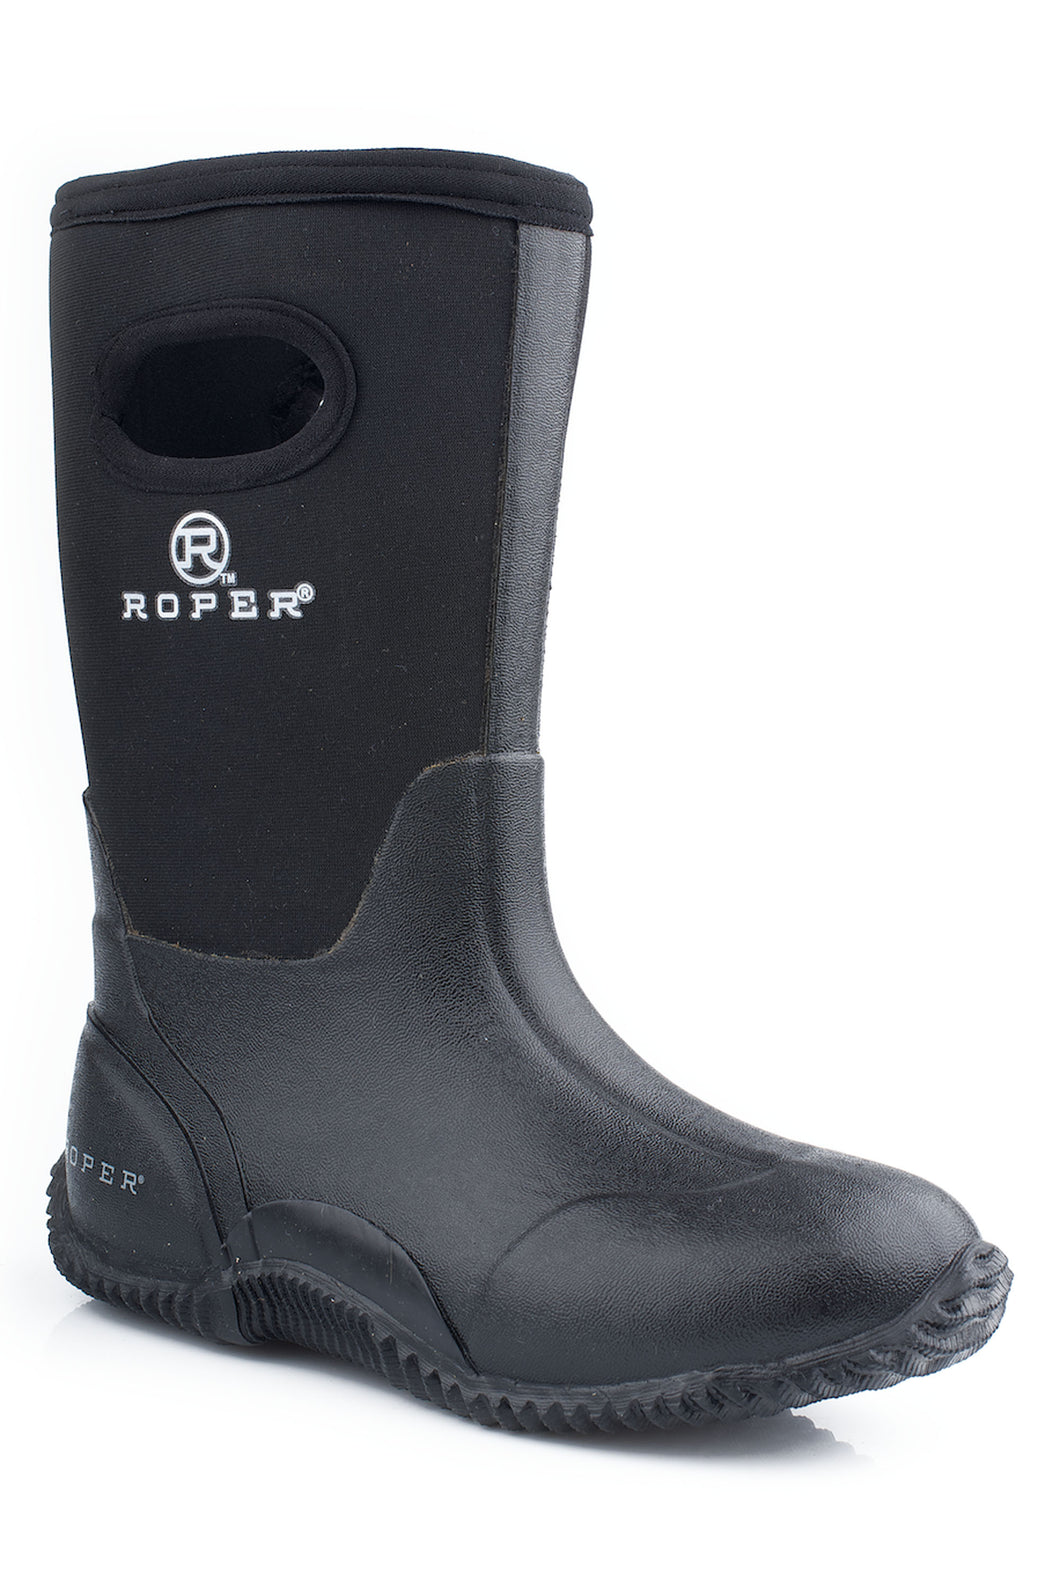 Barnyard Black Boot Youth Boot 10